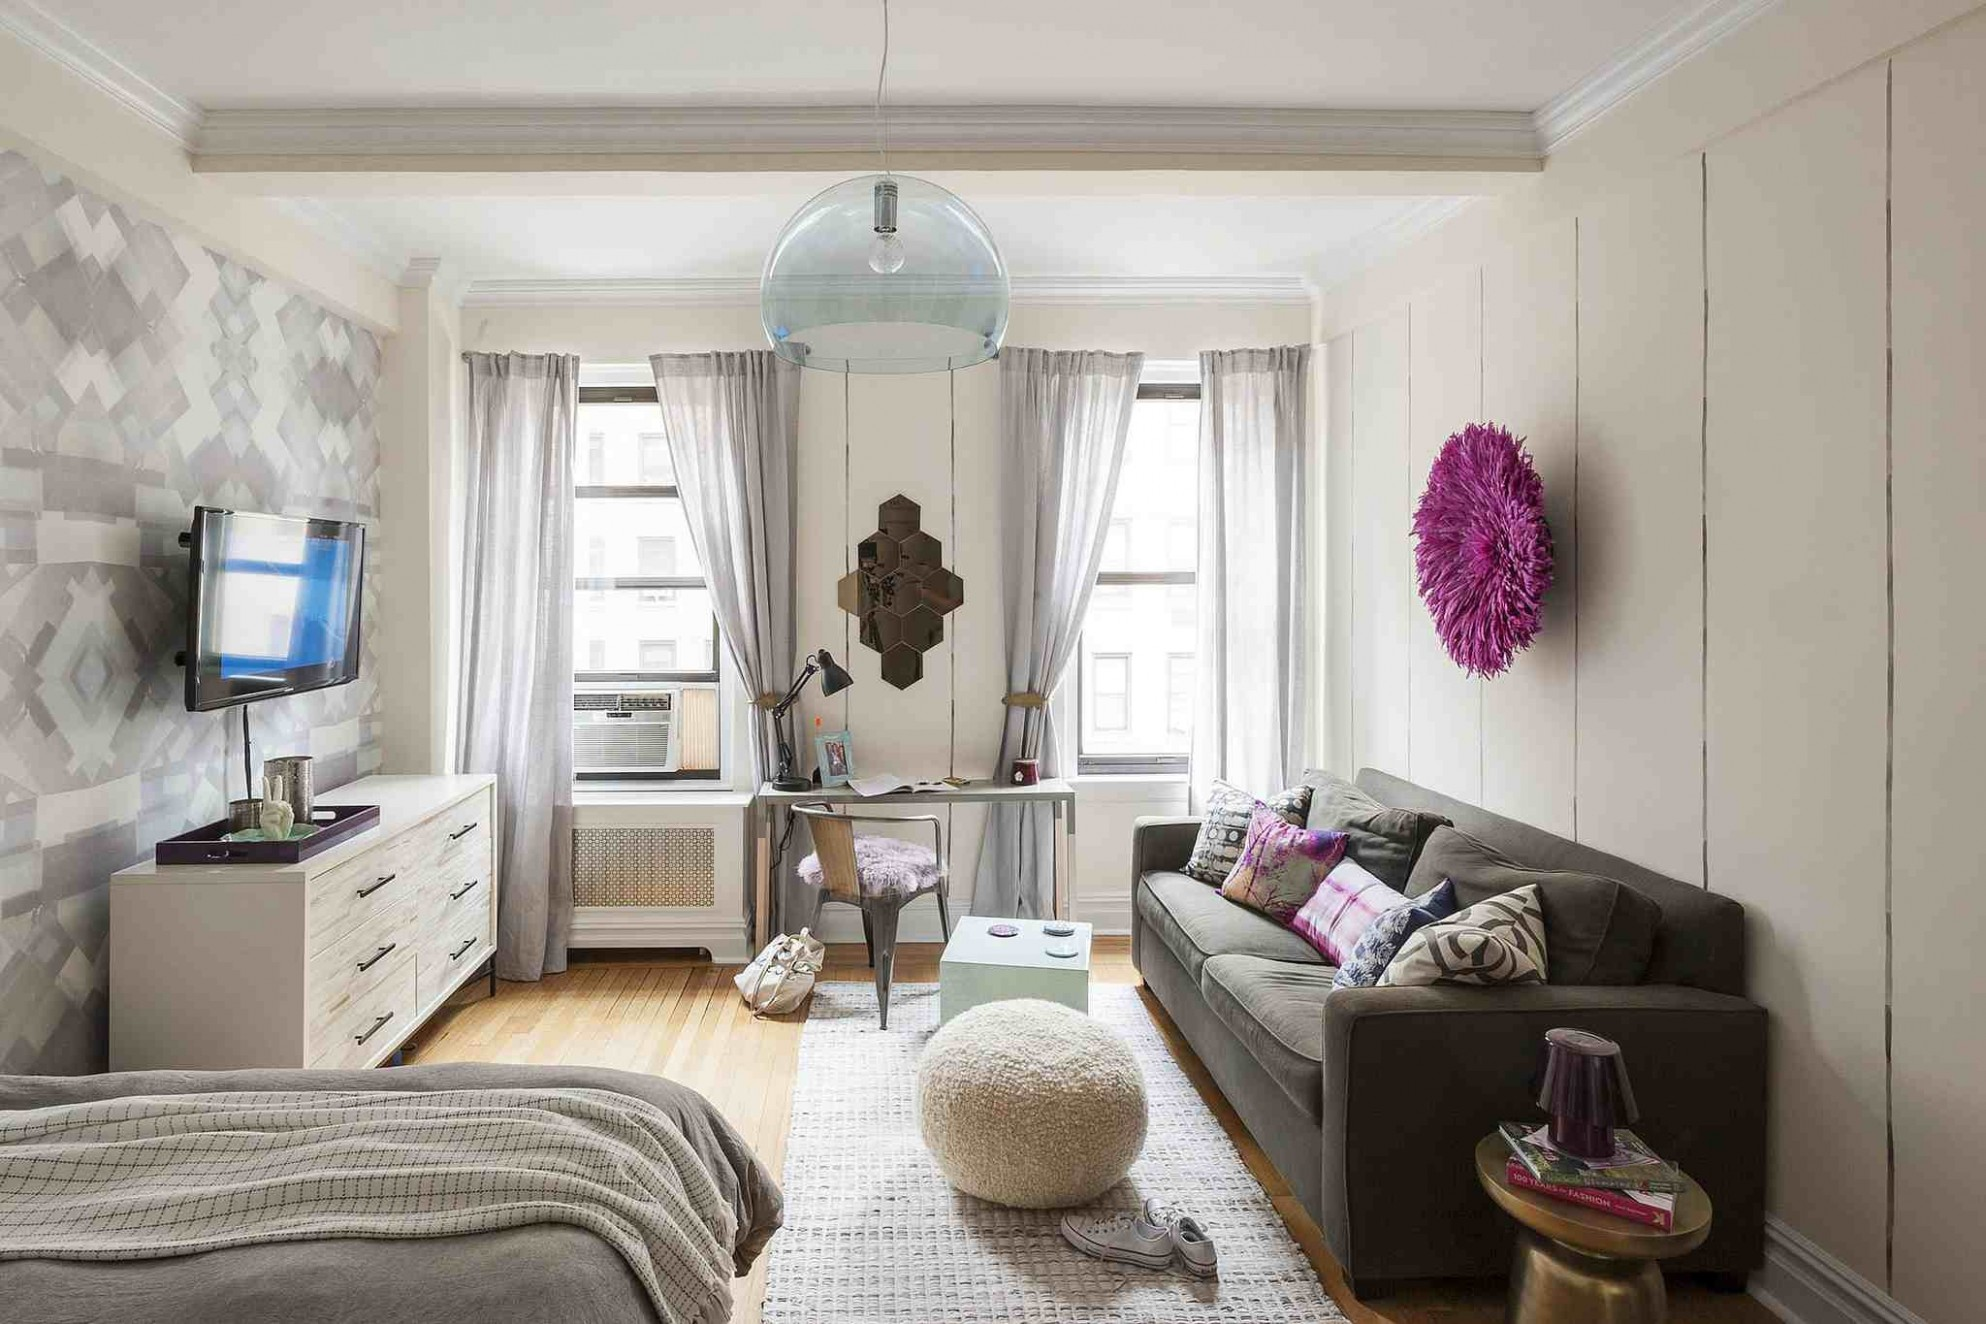 8 Perfect Studio Apartment Layouts That Work - One Room Apartment Decor Ideas